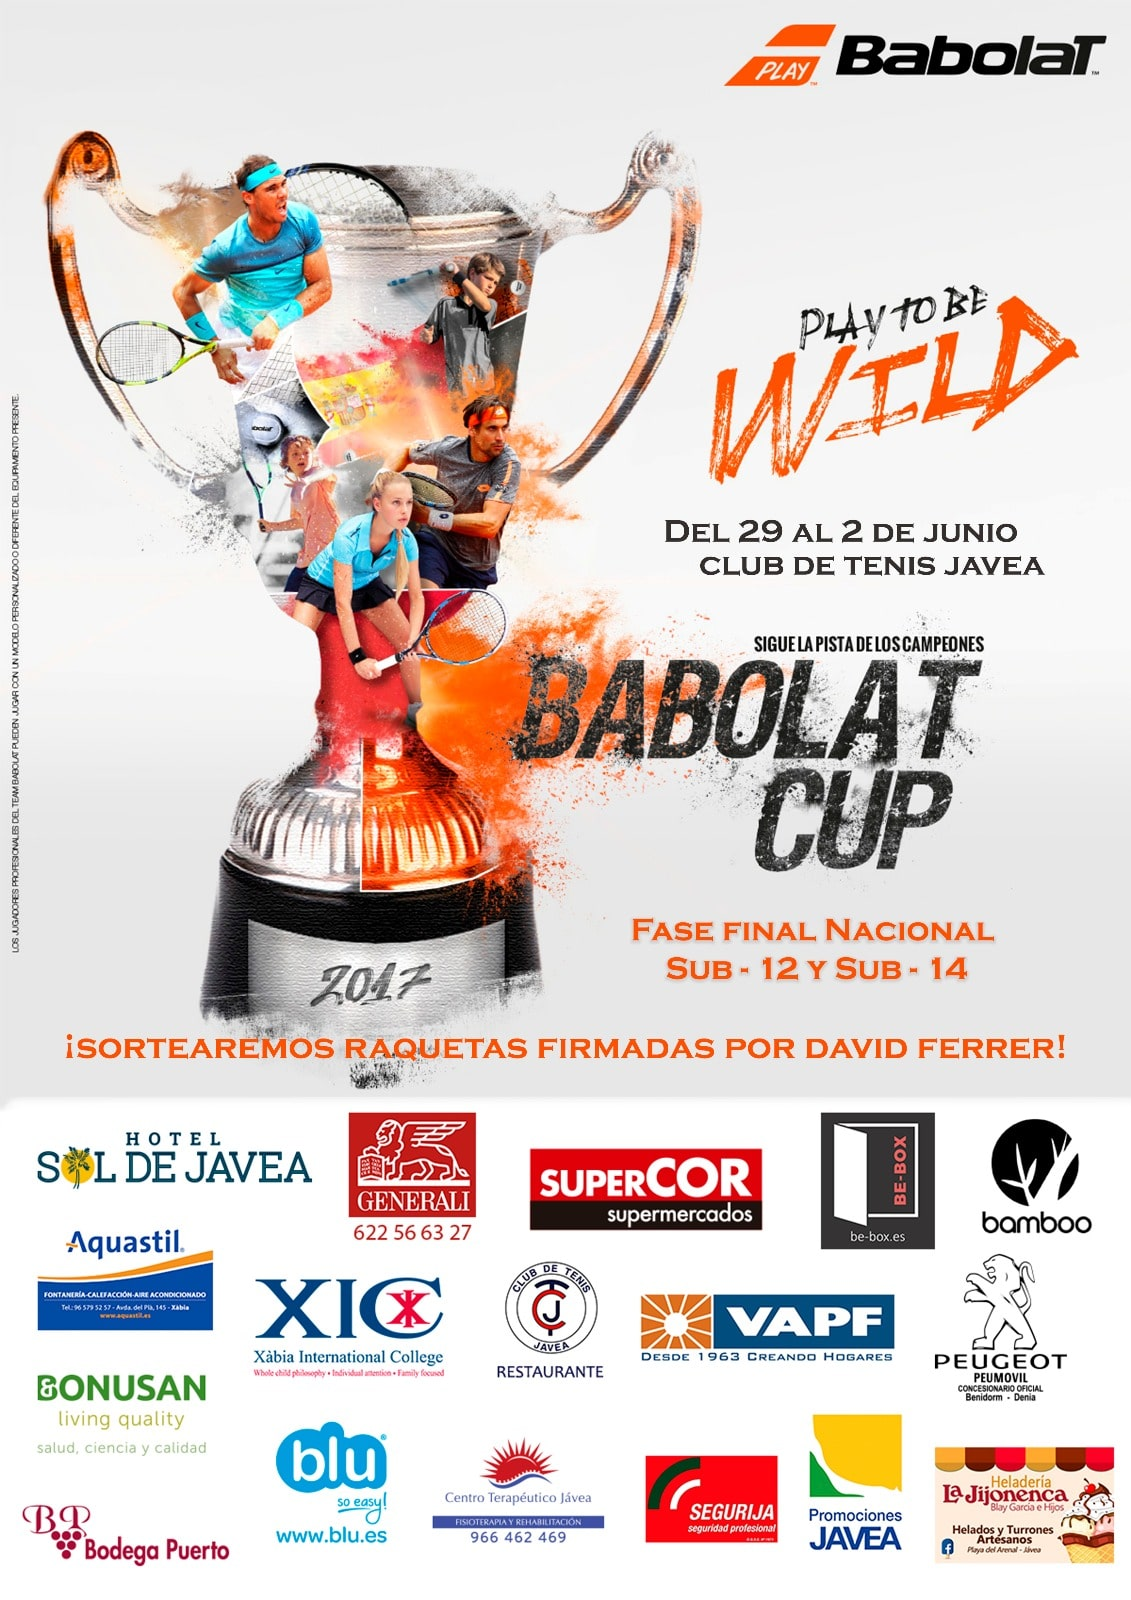 4th Babolat Cup at the David Ferrer Tennis Academy